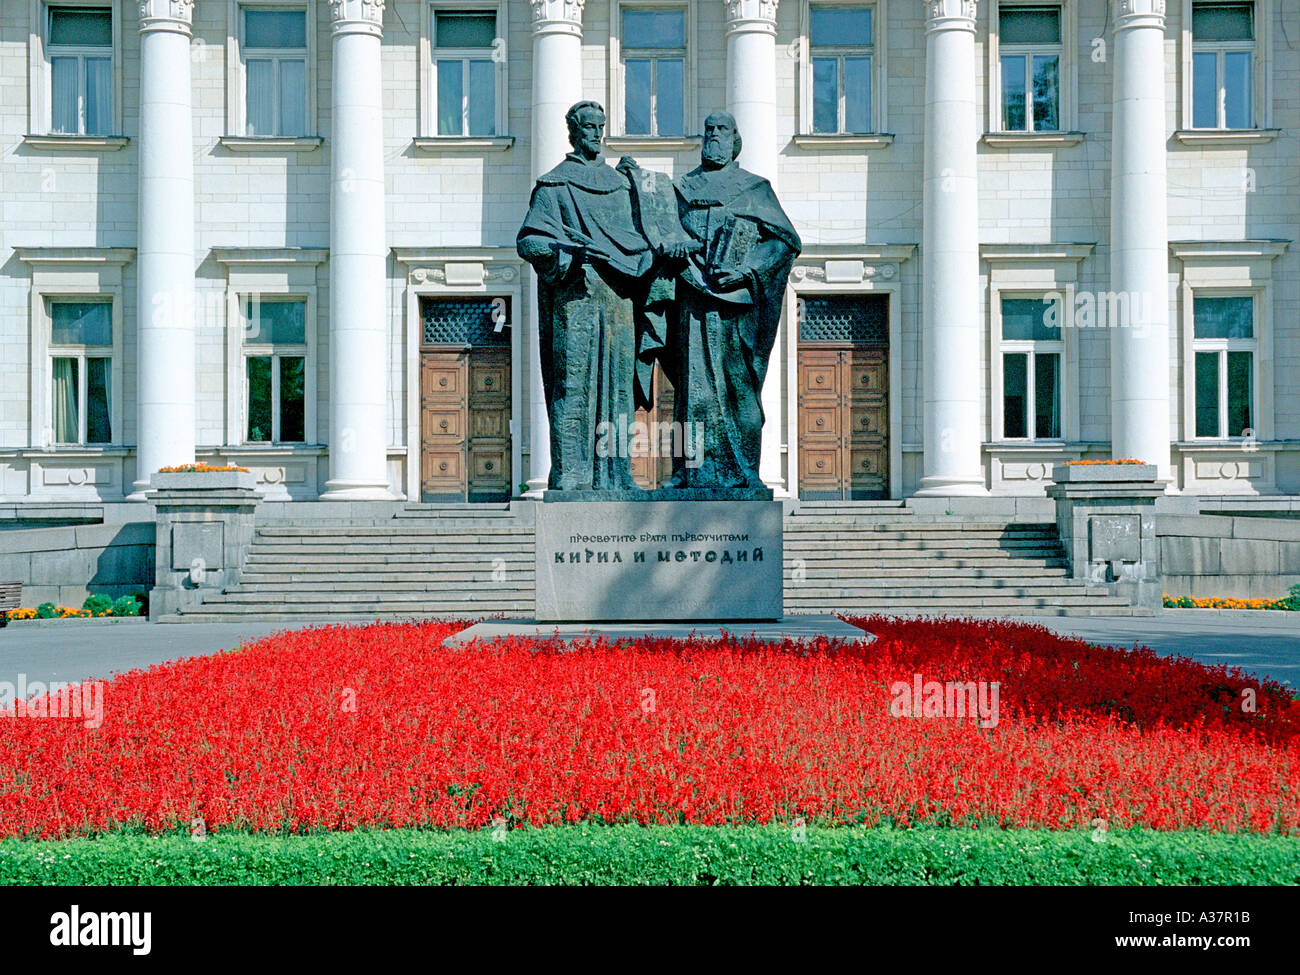 Cyril And Methodius Statue Outside The National Library In Sofia The Capital Of Bulgaria - Stock Image